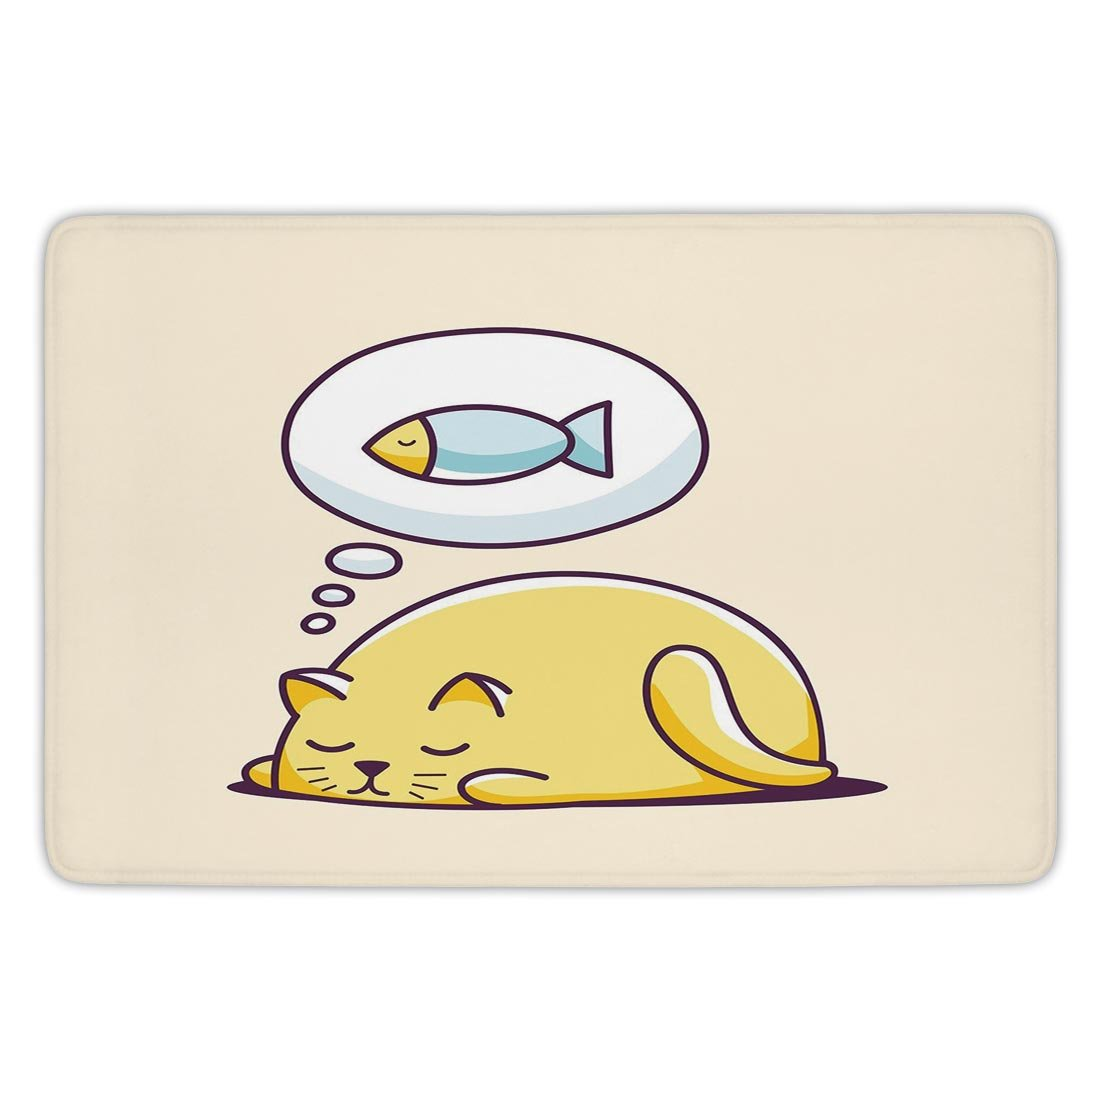 Bathroom Bath Rug Kitchen Floor Mat Carpet,Funny,Cute Kitty Dreaming A Fish Hungry Cat Sleeping Cheerful Character Cartoon Animal,Yellow Peach,Flannel Microfiber Non-slip Soft Absorbent